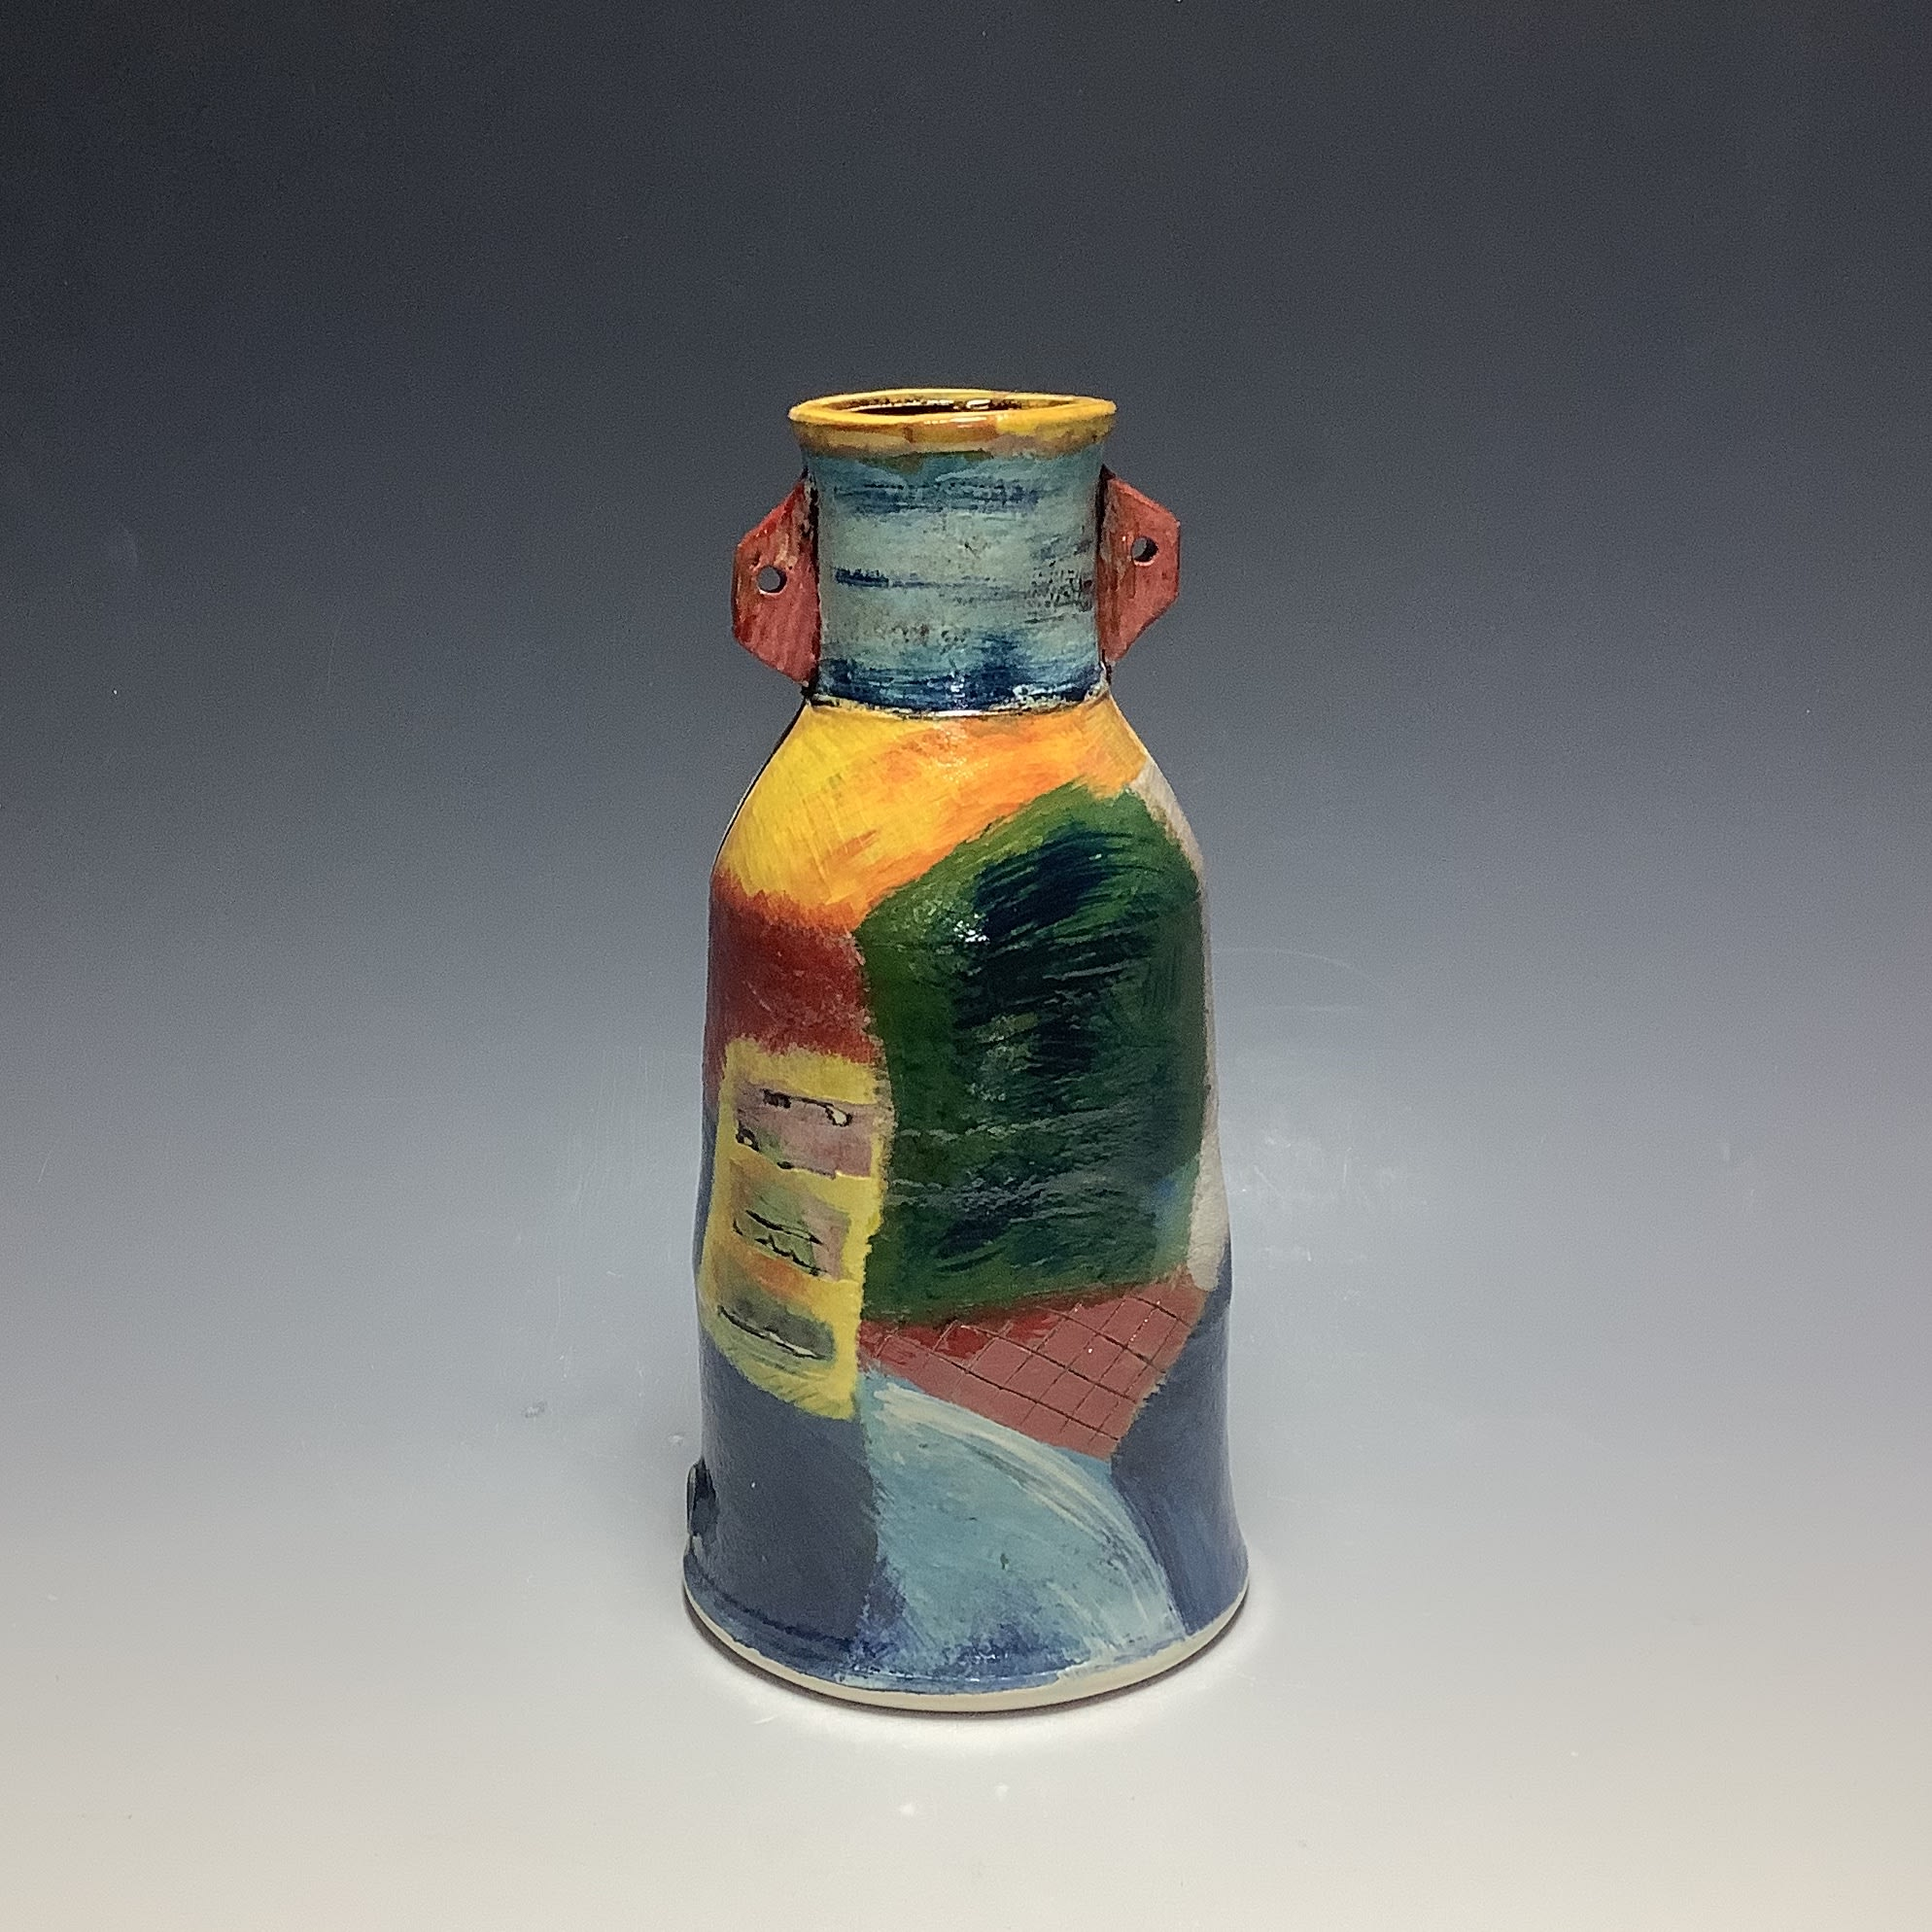 """<span class=""""link fancybox-details-link""""><a href=""""/artists/100-john-pollex/works/6832-john-pollex-bottle-with-neck-attachment-2020/"""">View Detail Page</a></span><div class=""""artist""""><strong>John Pollex</strong></div> b. 1941 <div class=""""title""""><em>Bottle with neck attachment</em>, 2020</div> <div class=""""signed_and_dated"""">impressed with the artist's seal mark 'JP'</div> <div class=""""medium"""">white earthenware decorated with coloured slips</div> <div class=""""dimensions"""">h. 8.5in</div><div class=""""copyright_line"""">Ownart: £22 x 10 Months, 0% APR</div>"""